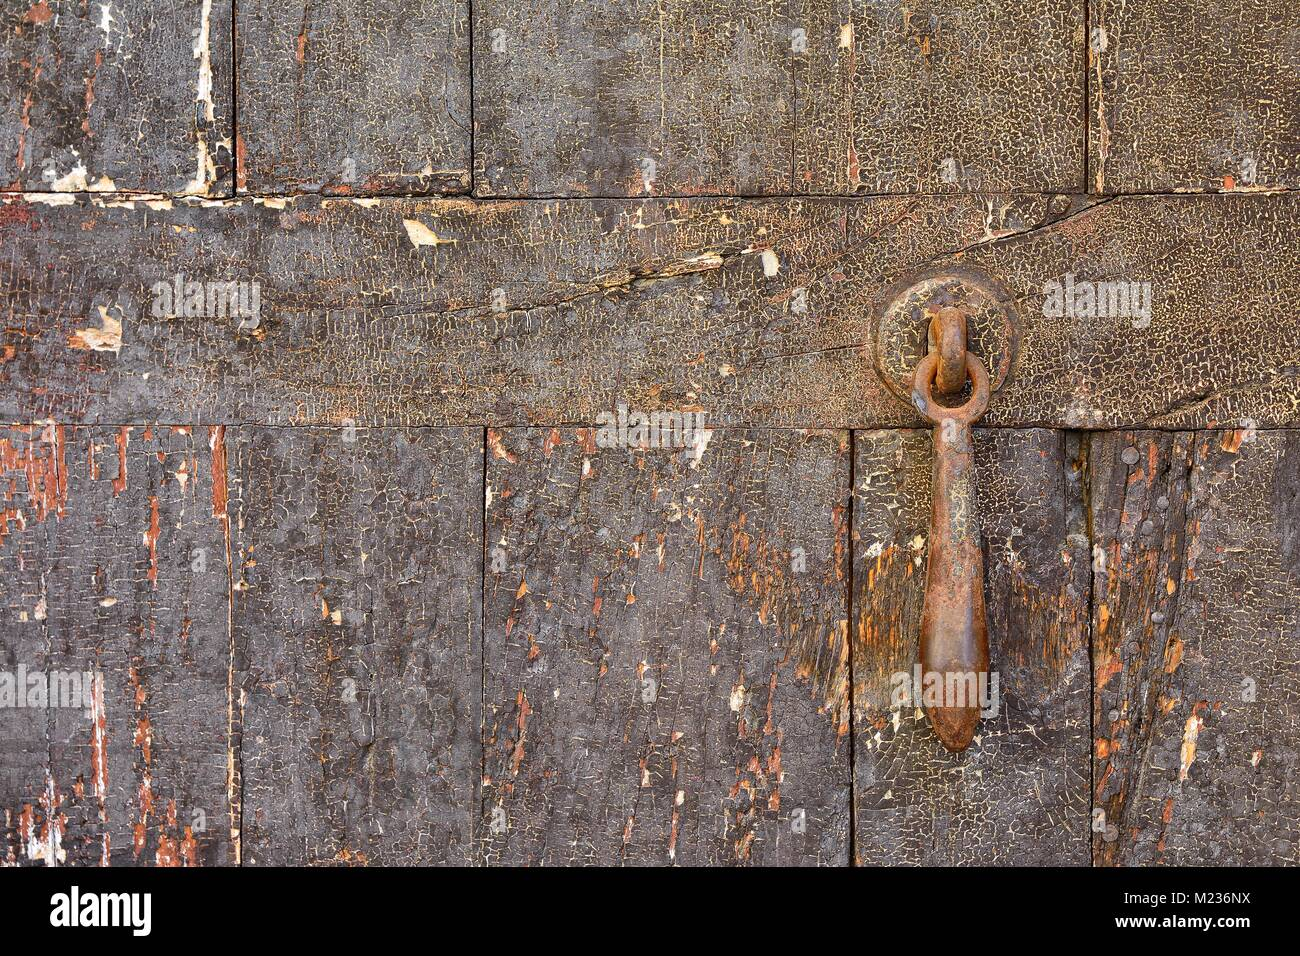 Close-up of worn out shabby wooden door with rusty metal doorbell - Stock Image